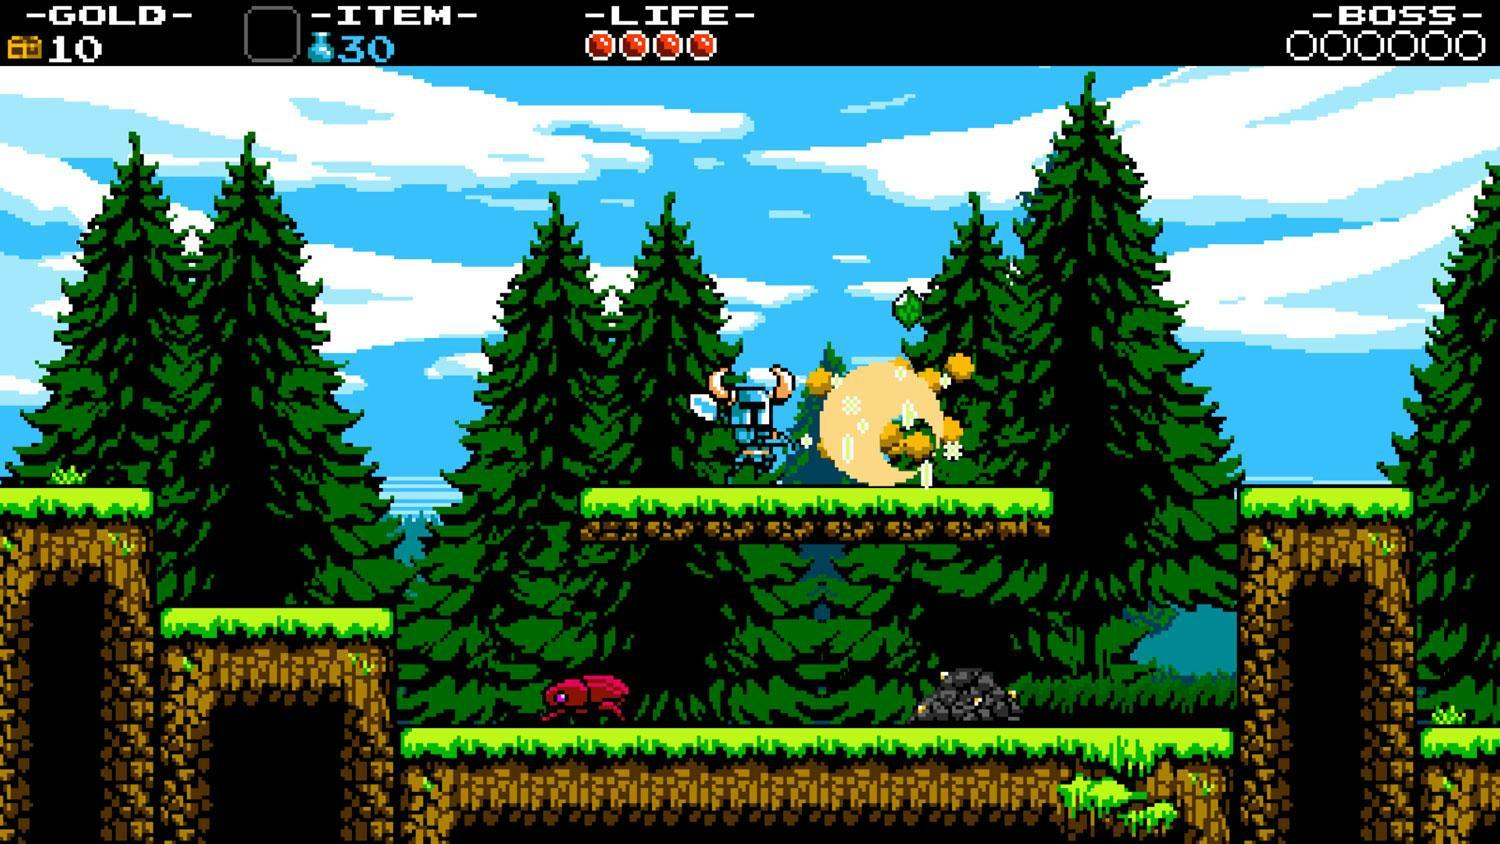 'Shovel Knight' to be ported to Nintendo Switch amid franchise rebranding